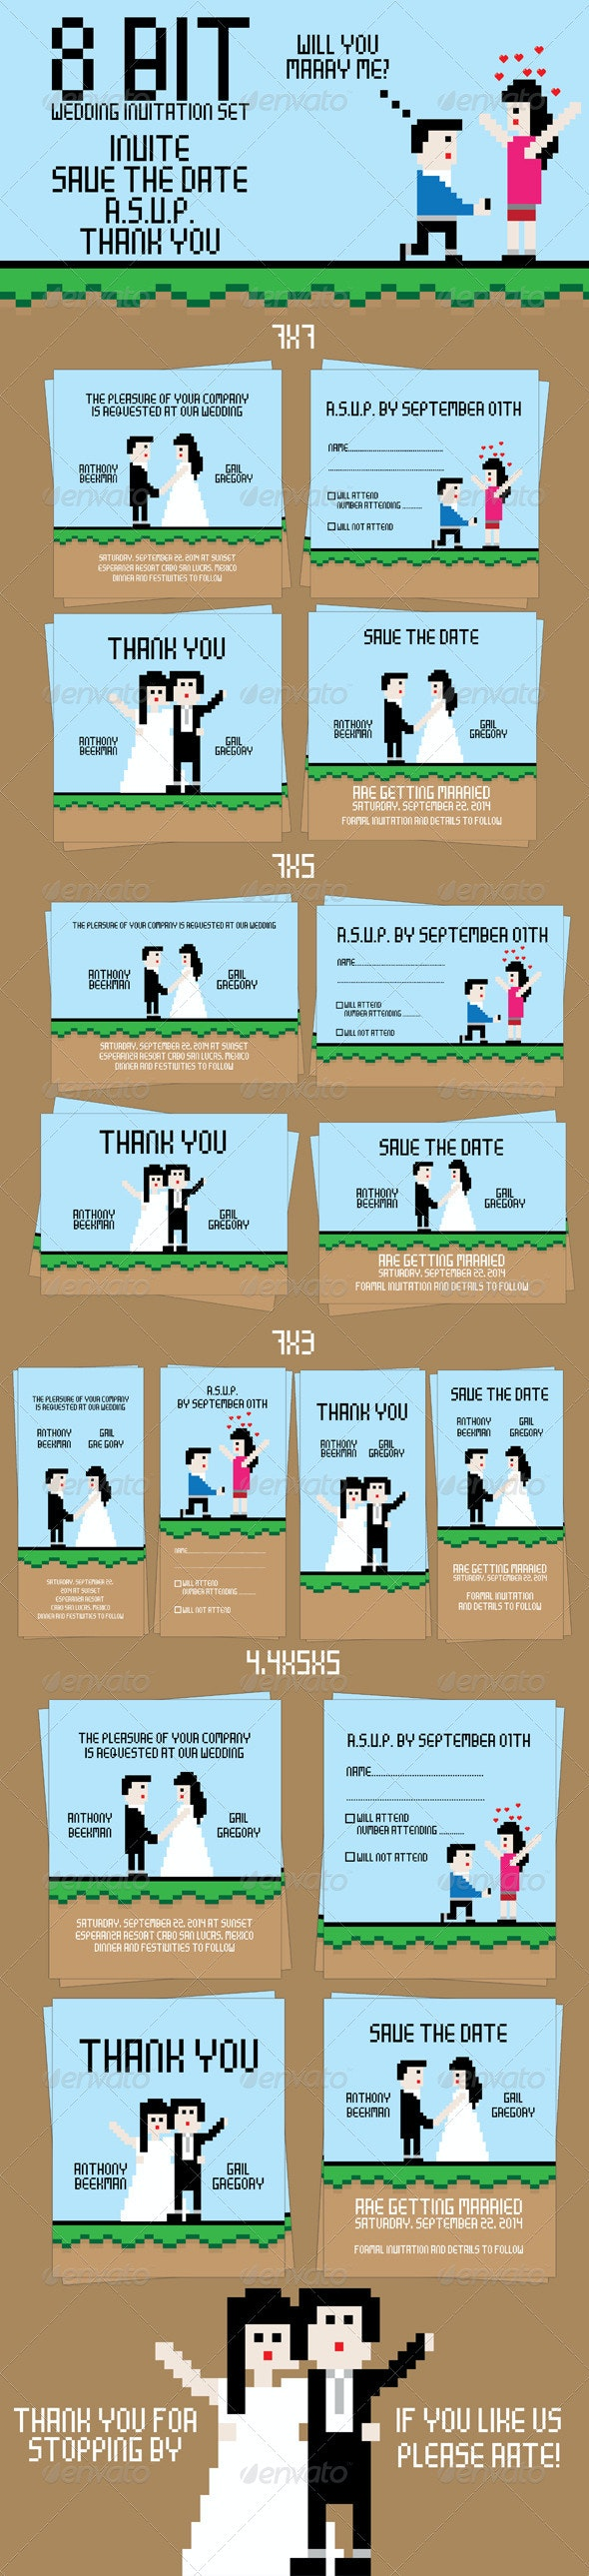 8 Bit Wedding Invitation Set - Weddings Cards & Invites